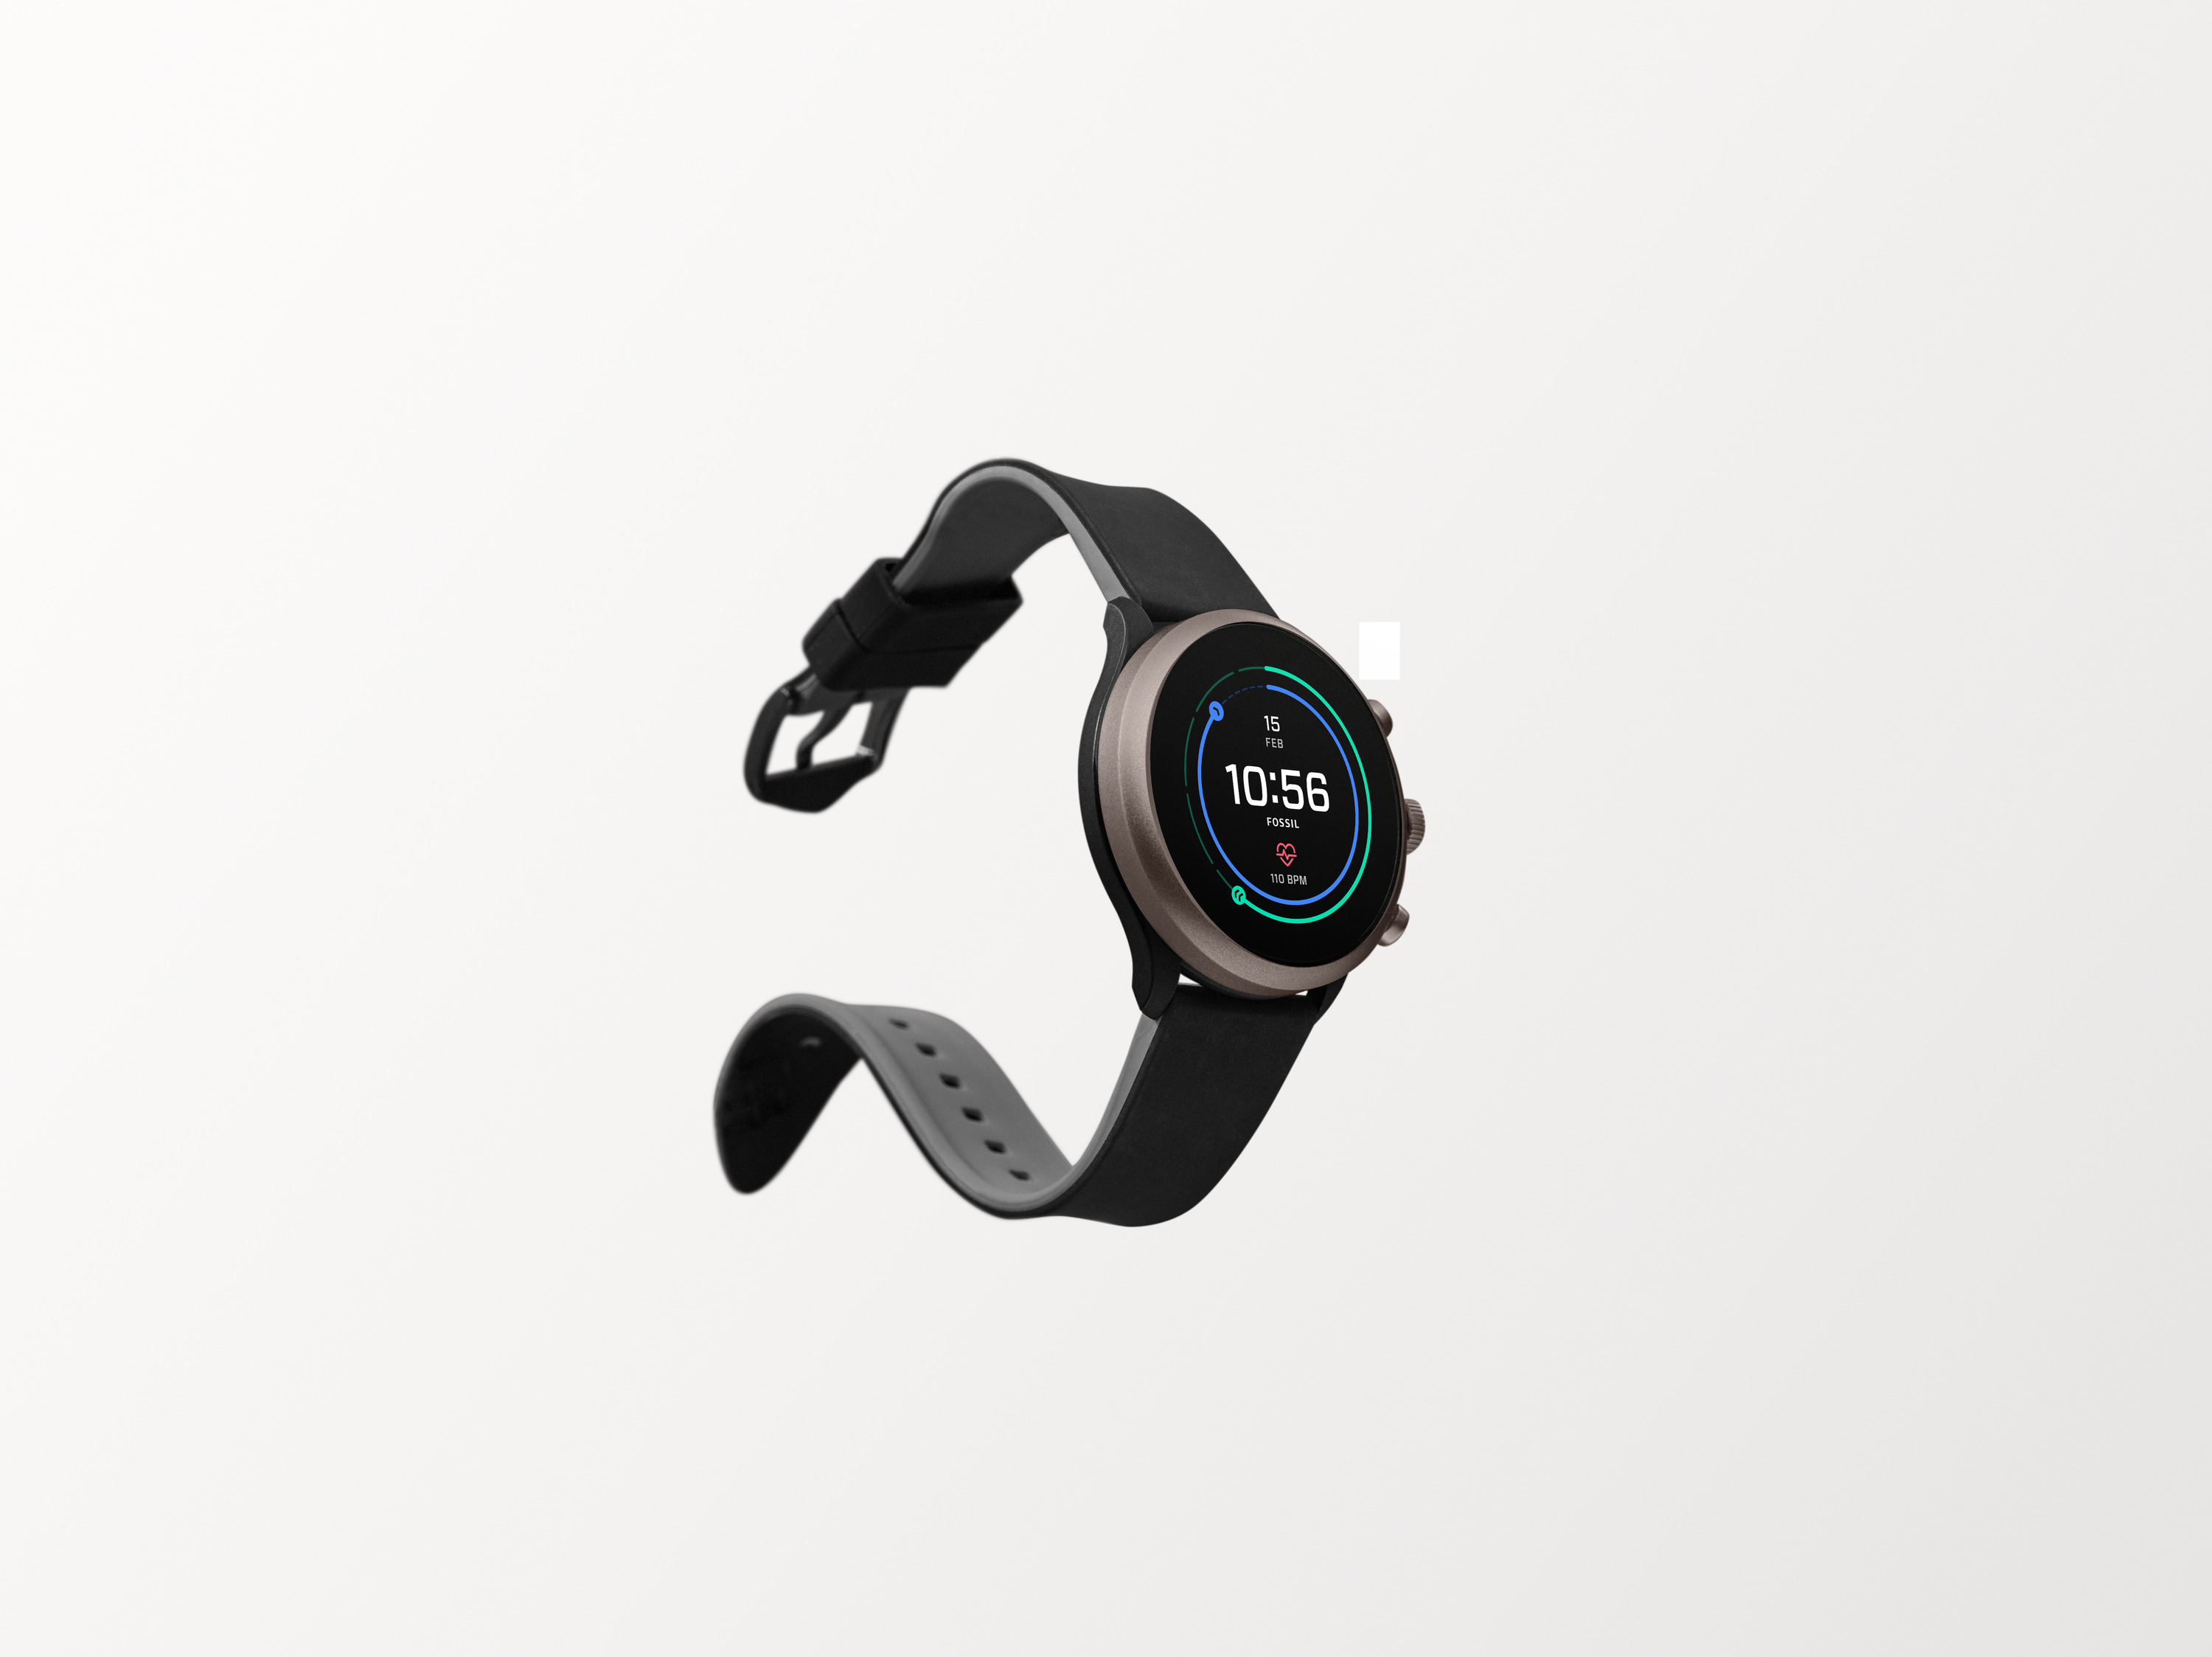 Fossil Sport smartwatch - Orologi bluetooth - Gioielleria Casavola Noci - marketing watch